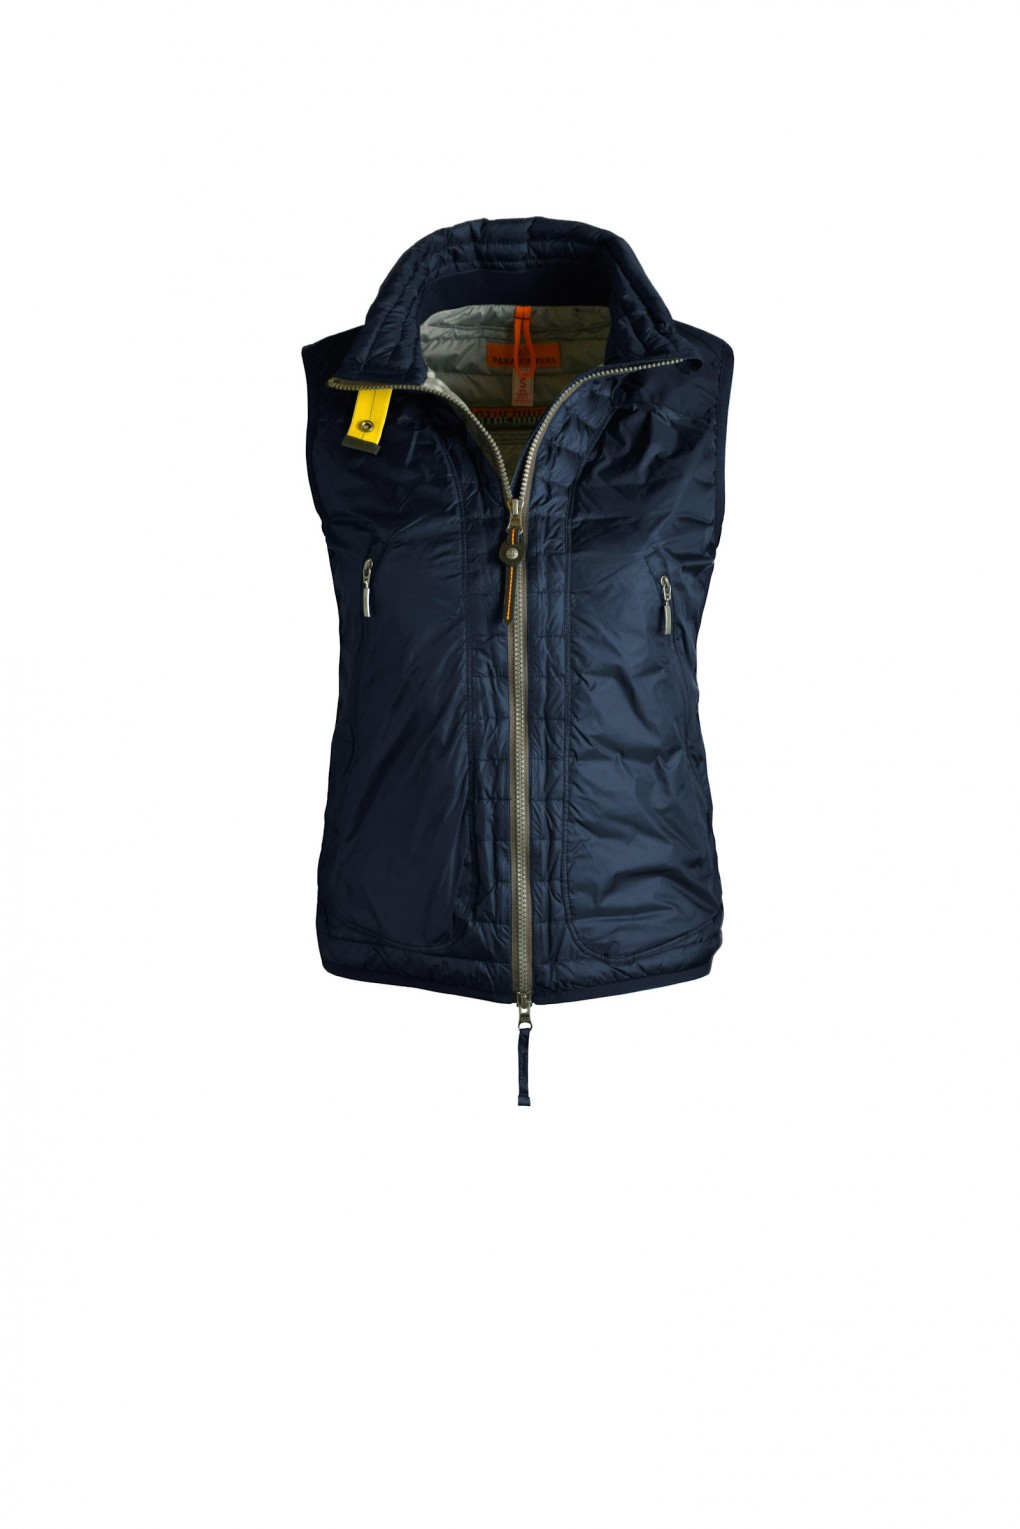 parajumpers BRUNA woman outerwear Marine